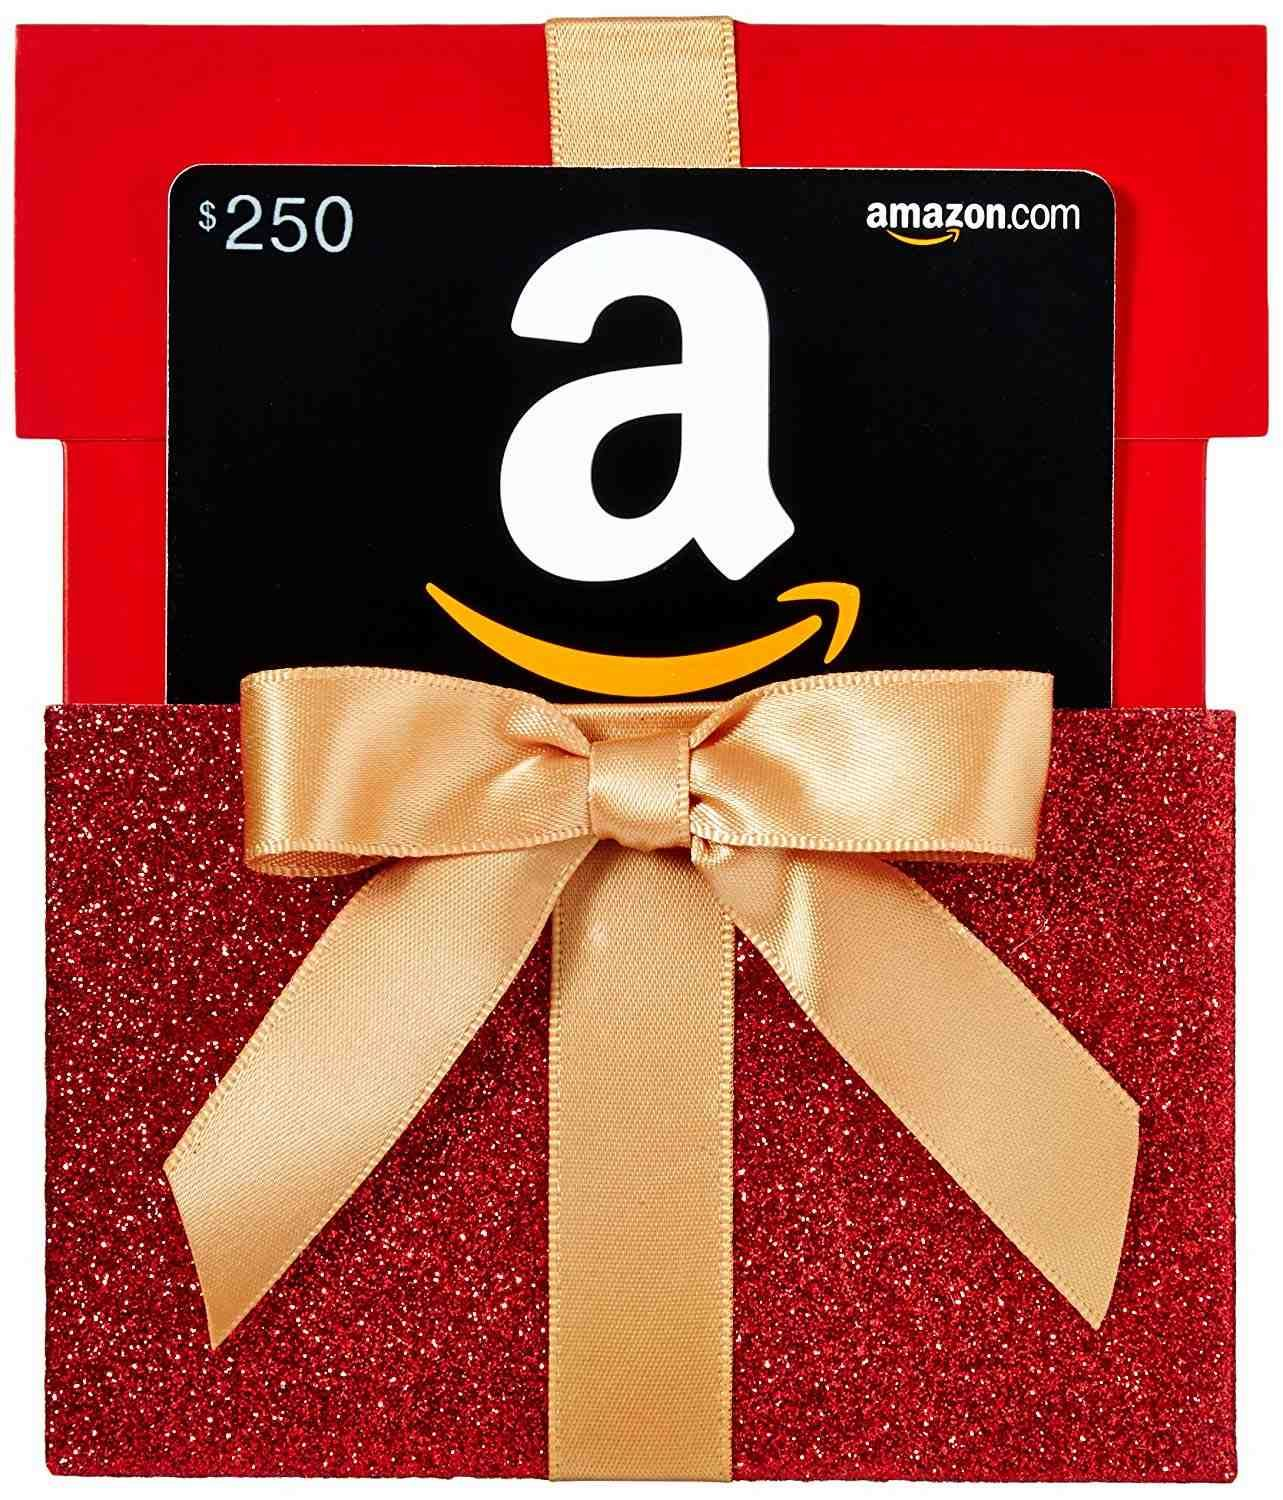 Span Style Color 0000ff B Font Face Arial 250 Amazon Gift Card B Font Span Amazon Gift Card Free Egift Card Gift Card